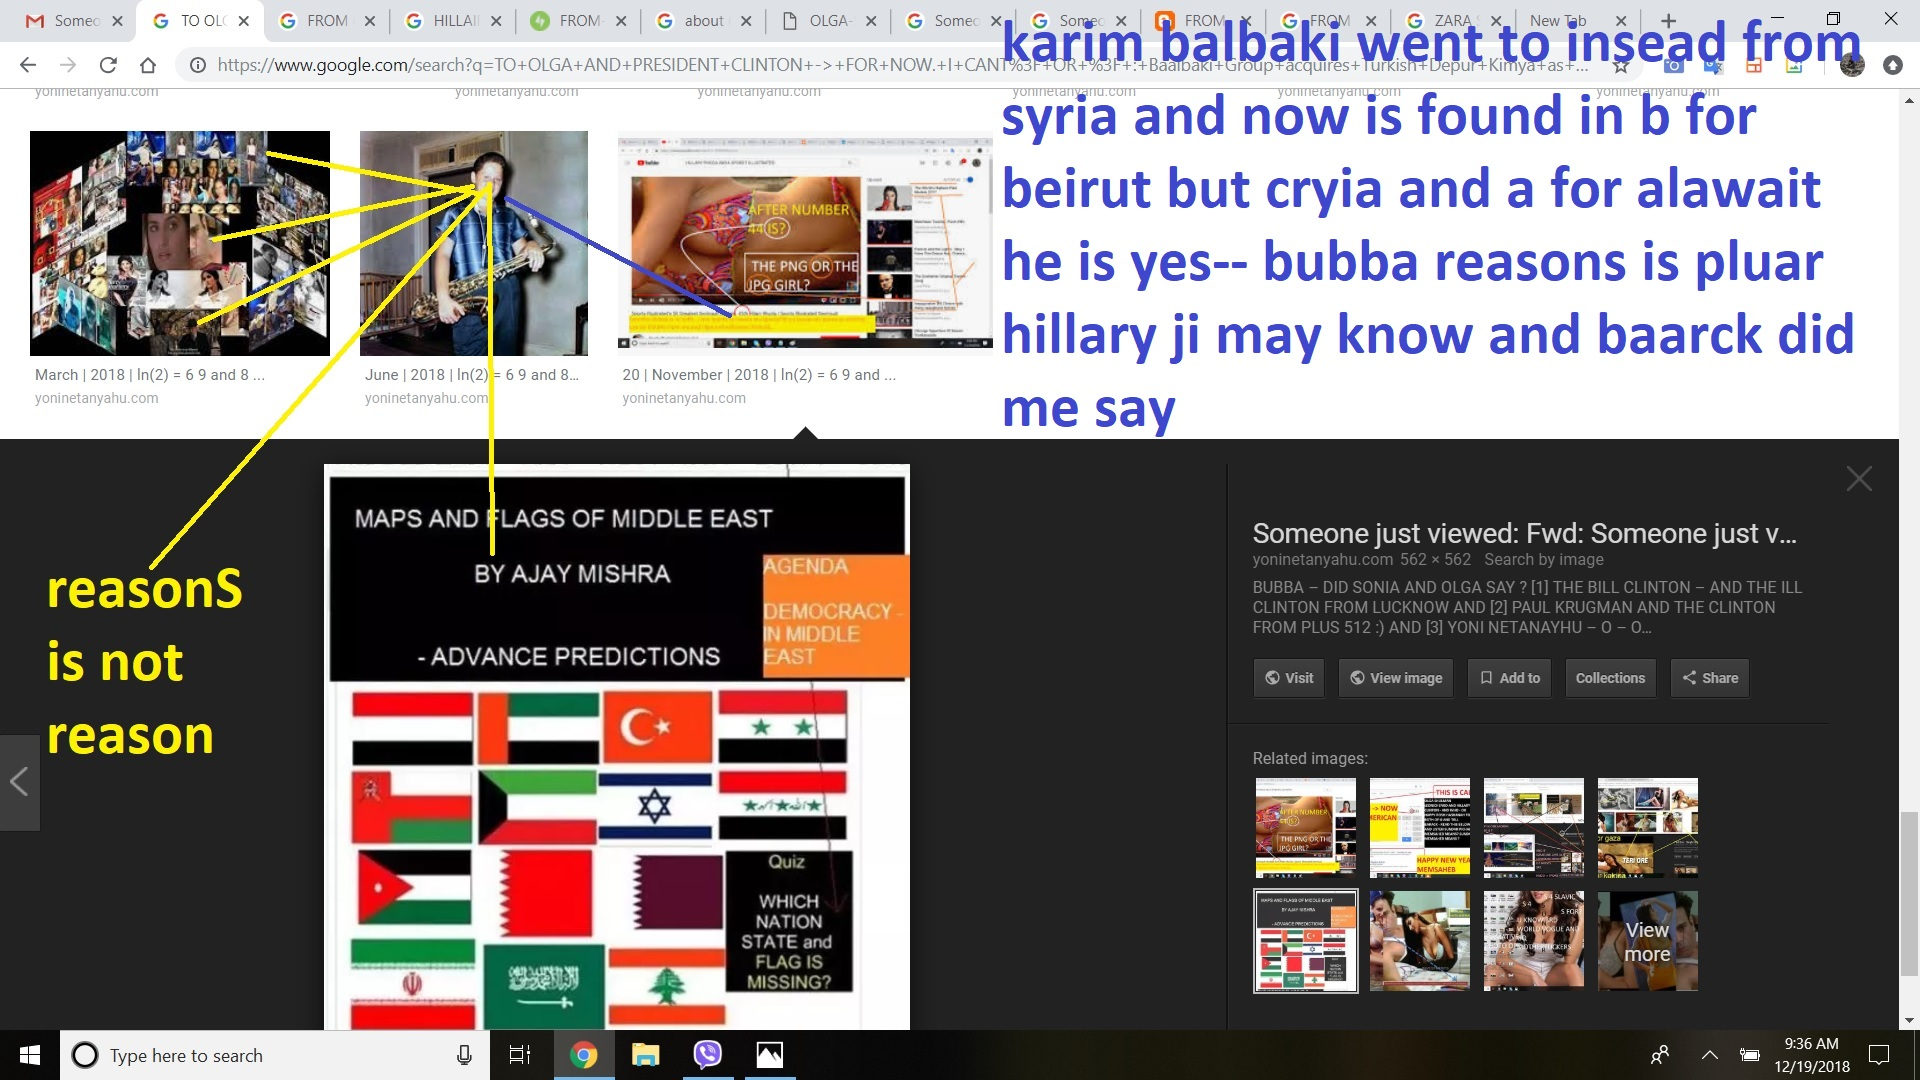 karim balbaki went to insead from syria and now is found in b for beirut but cryia and a for alawait he is yes-- bubba reasons is pluar hillary ji may know and baarck did me say